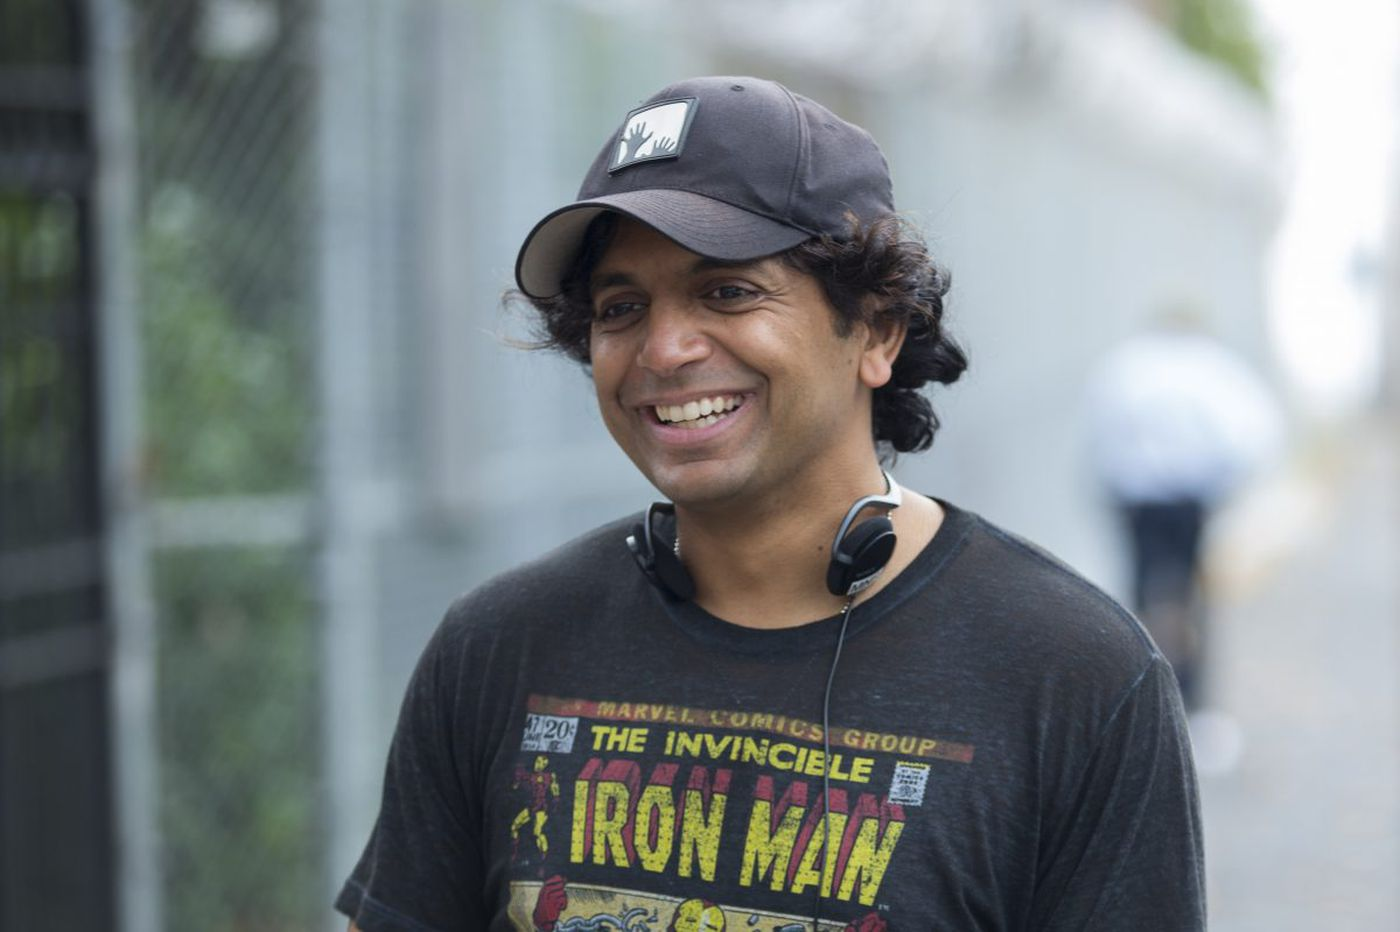 M. Night Shyamalan starts filming for 'Unbreakable' sequel, 'Glass'